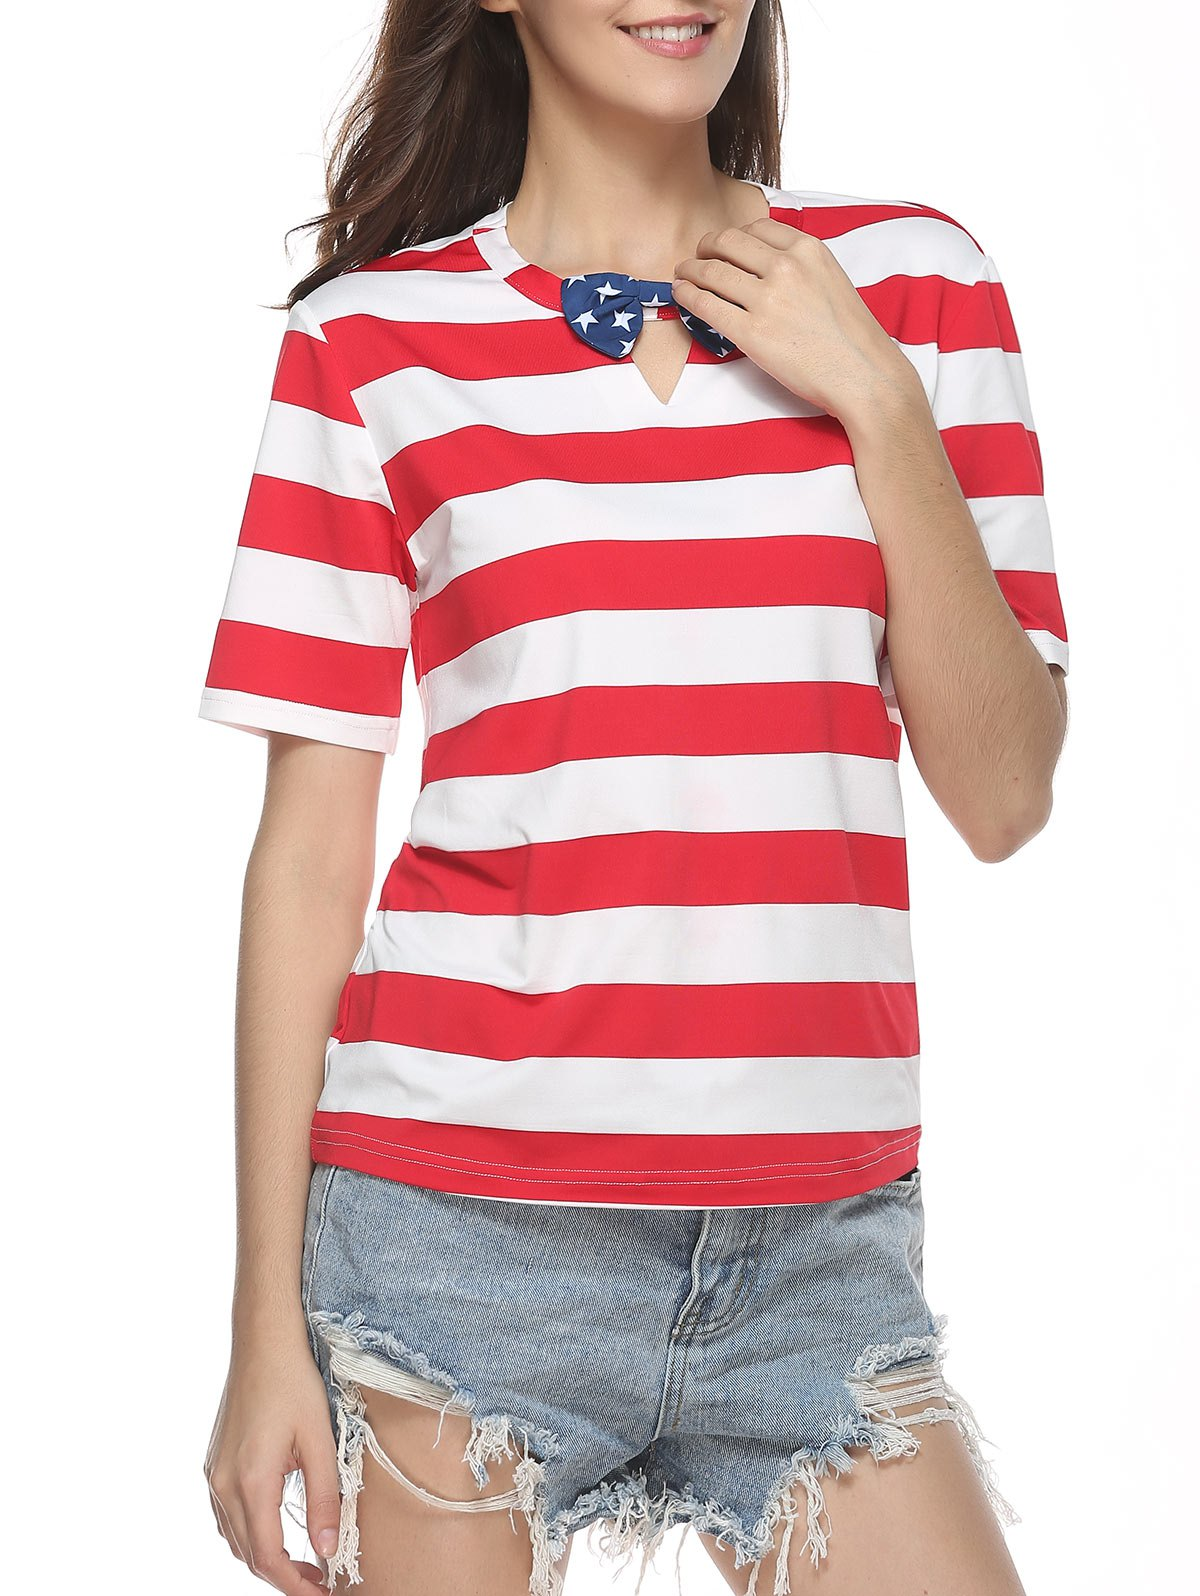 Keyhole neck striped t shirt with bow tie red m in tees for Striped shirt with tie